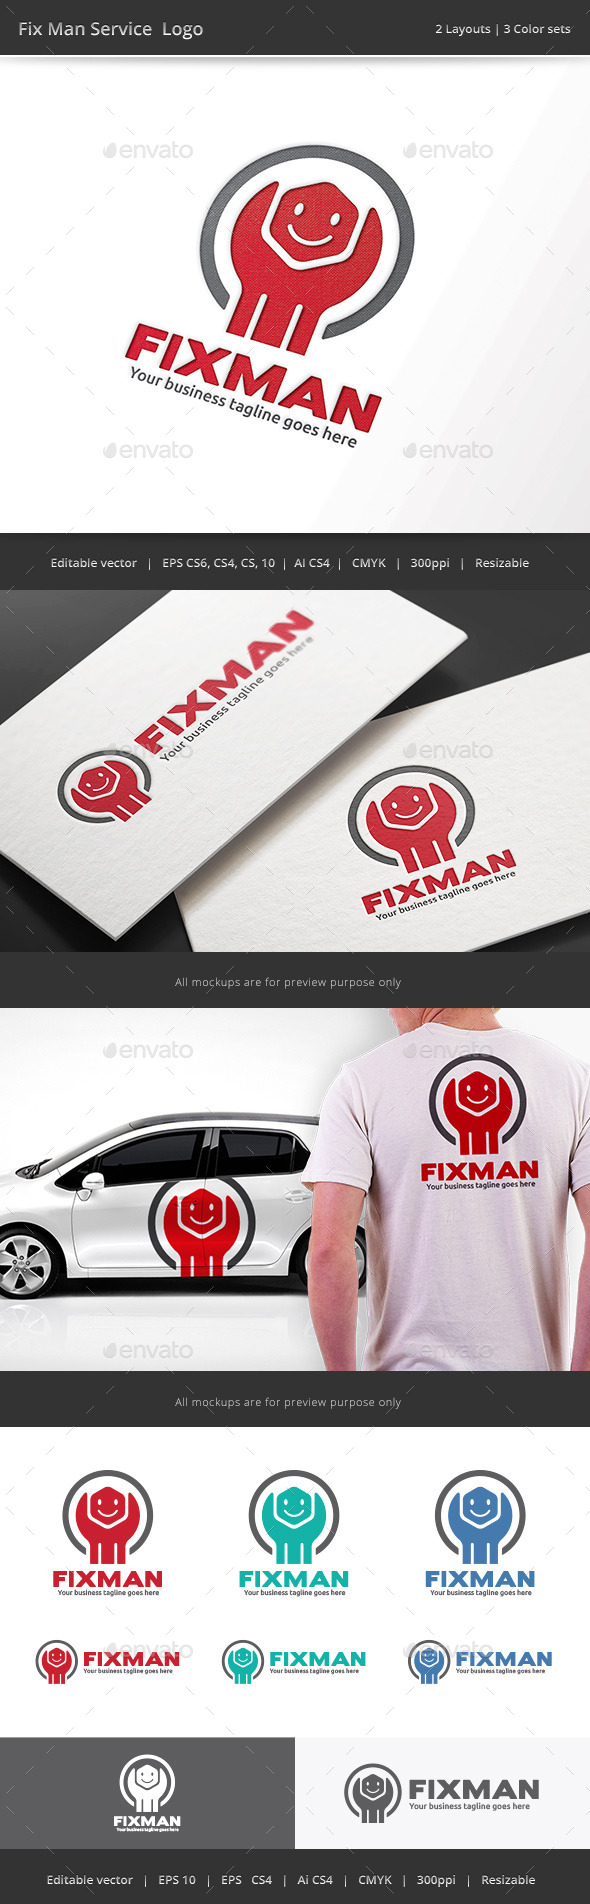 Fix Man Service Logo - Objects Logo Templates